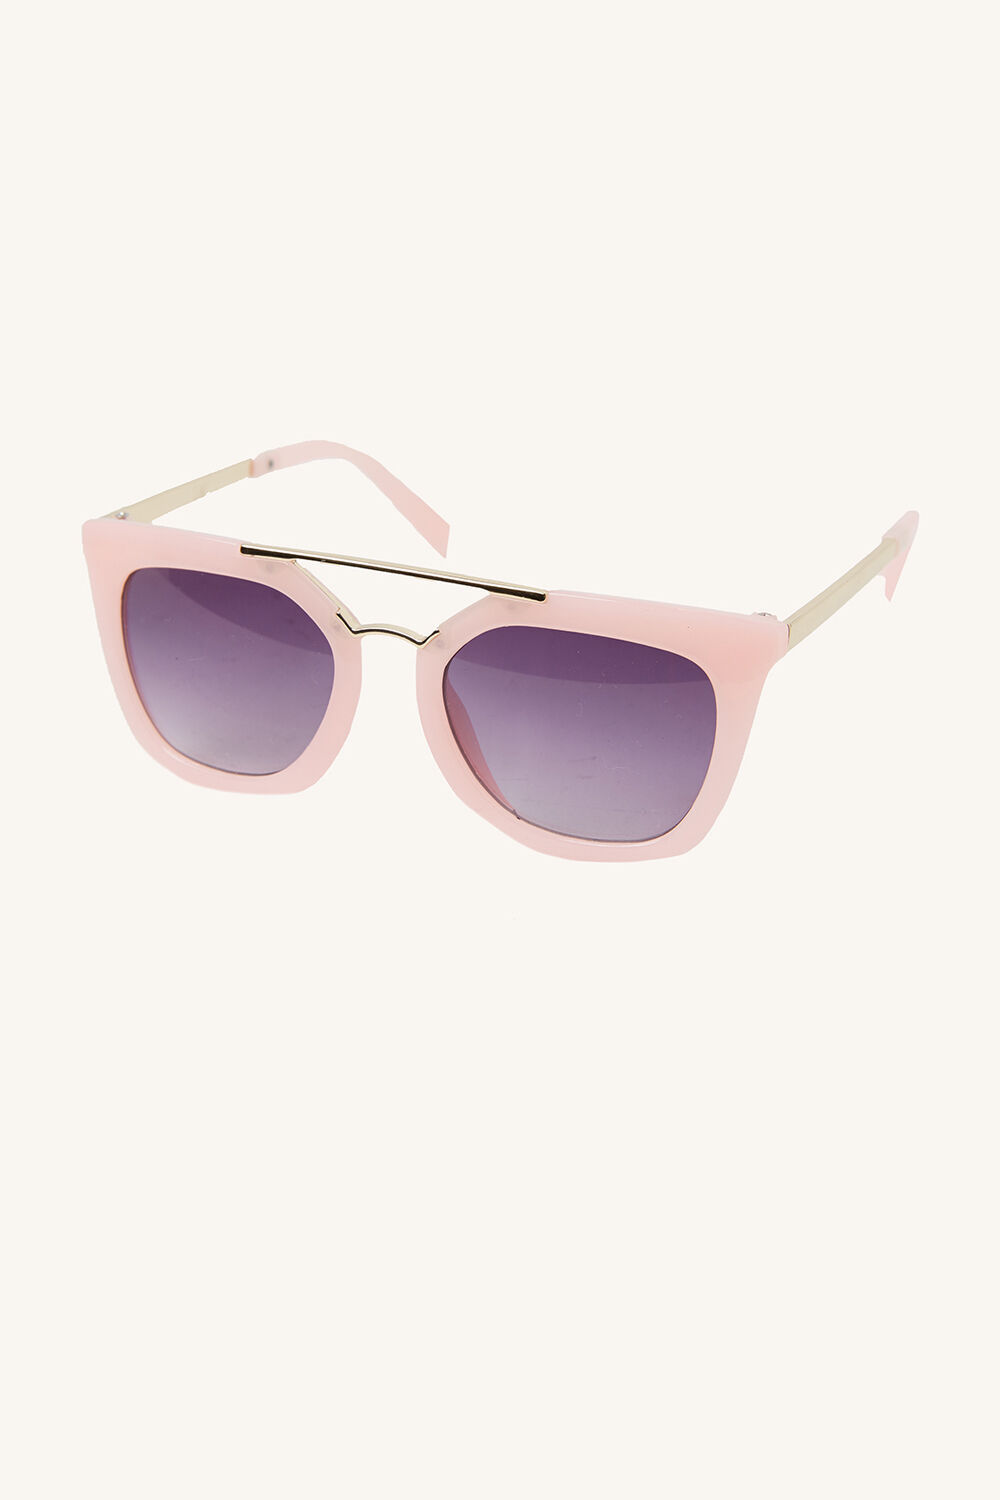 EMMA AVIATOR SUNGLASSES in colour PARADISE PINK